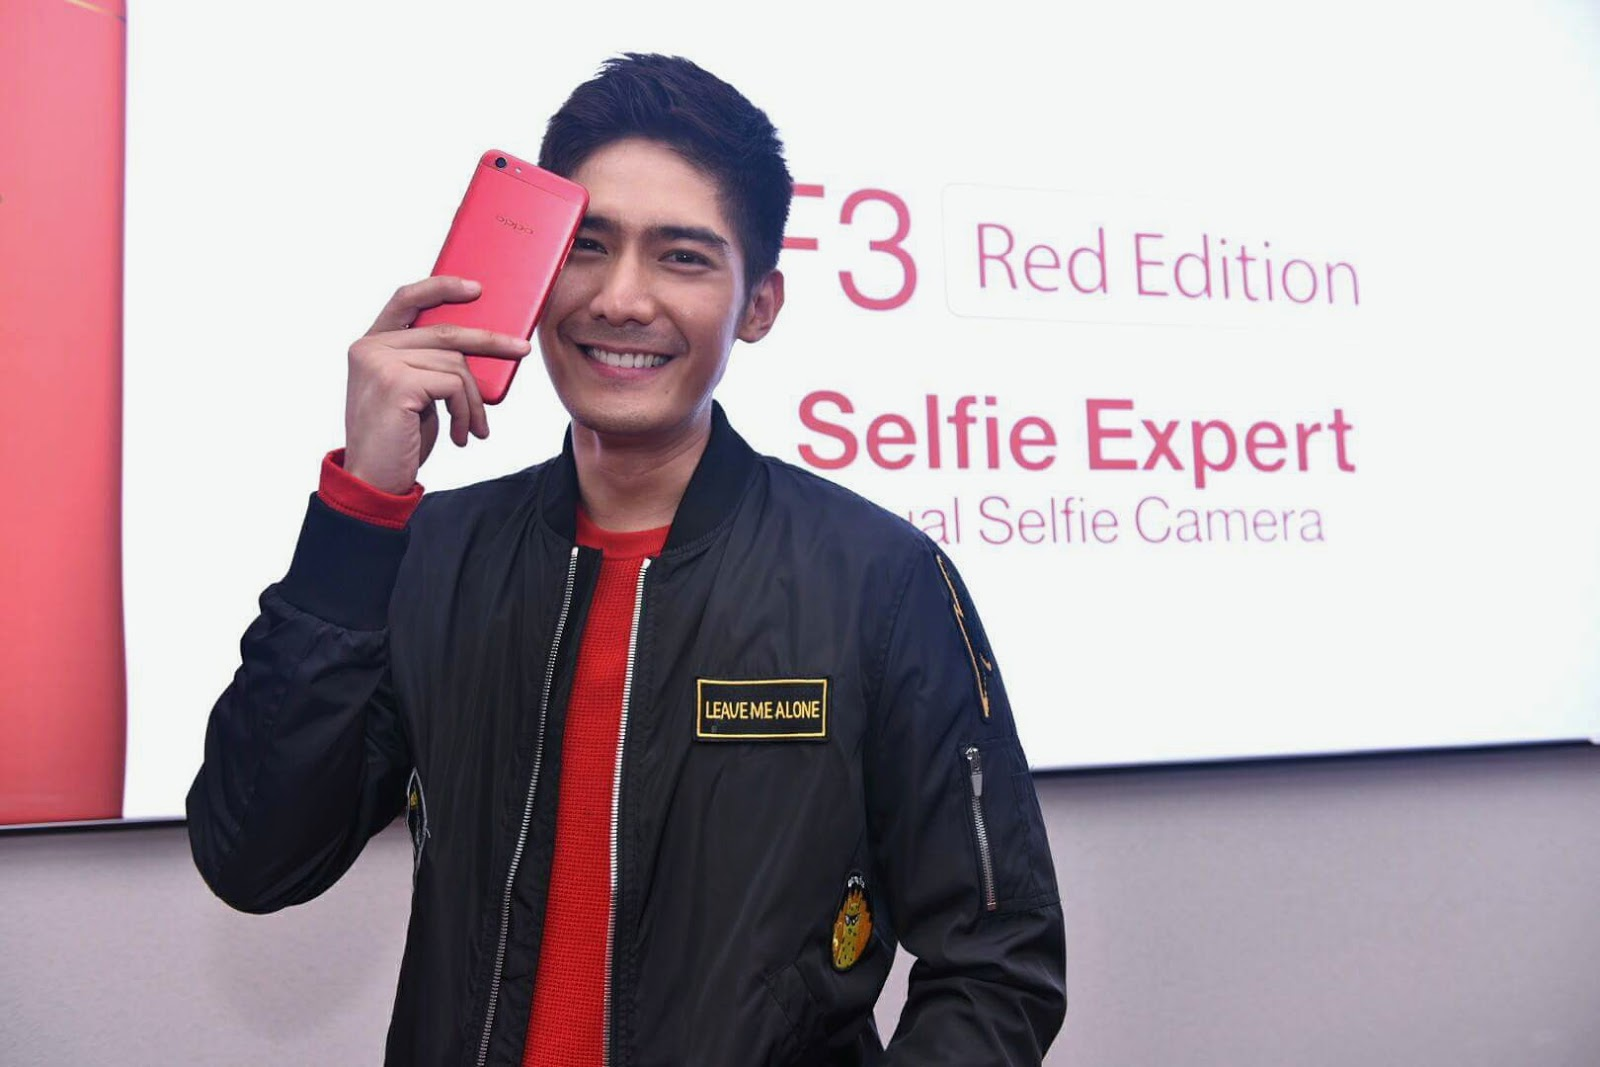 Much Anticipated Oppo F3 Red Limited Edition Is Now Available Grand Indonesia Robi Domingo With The New